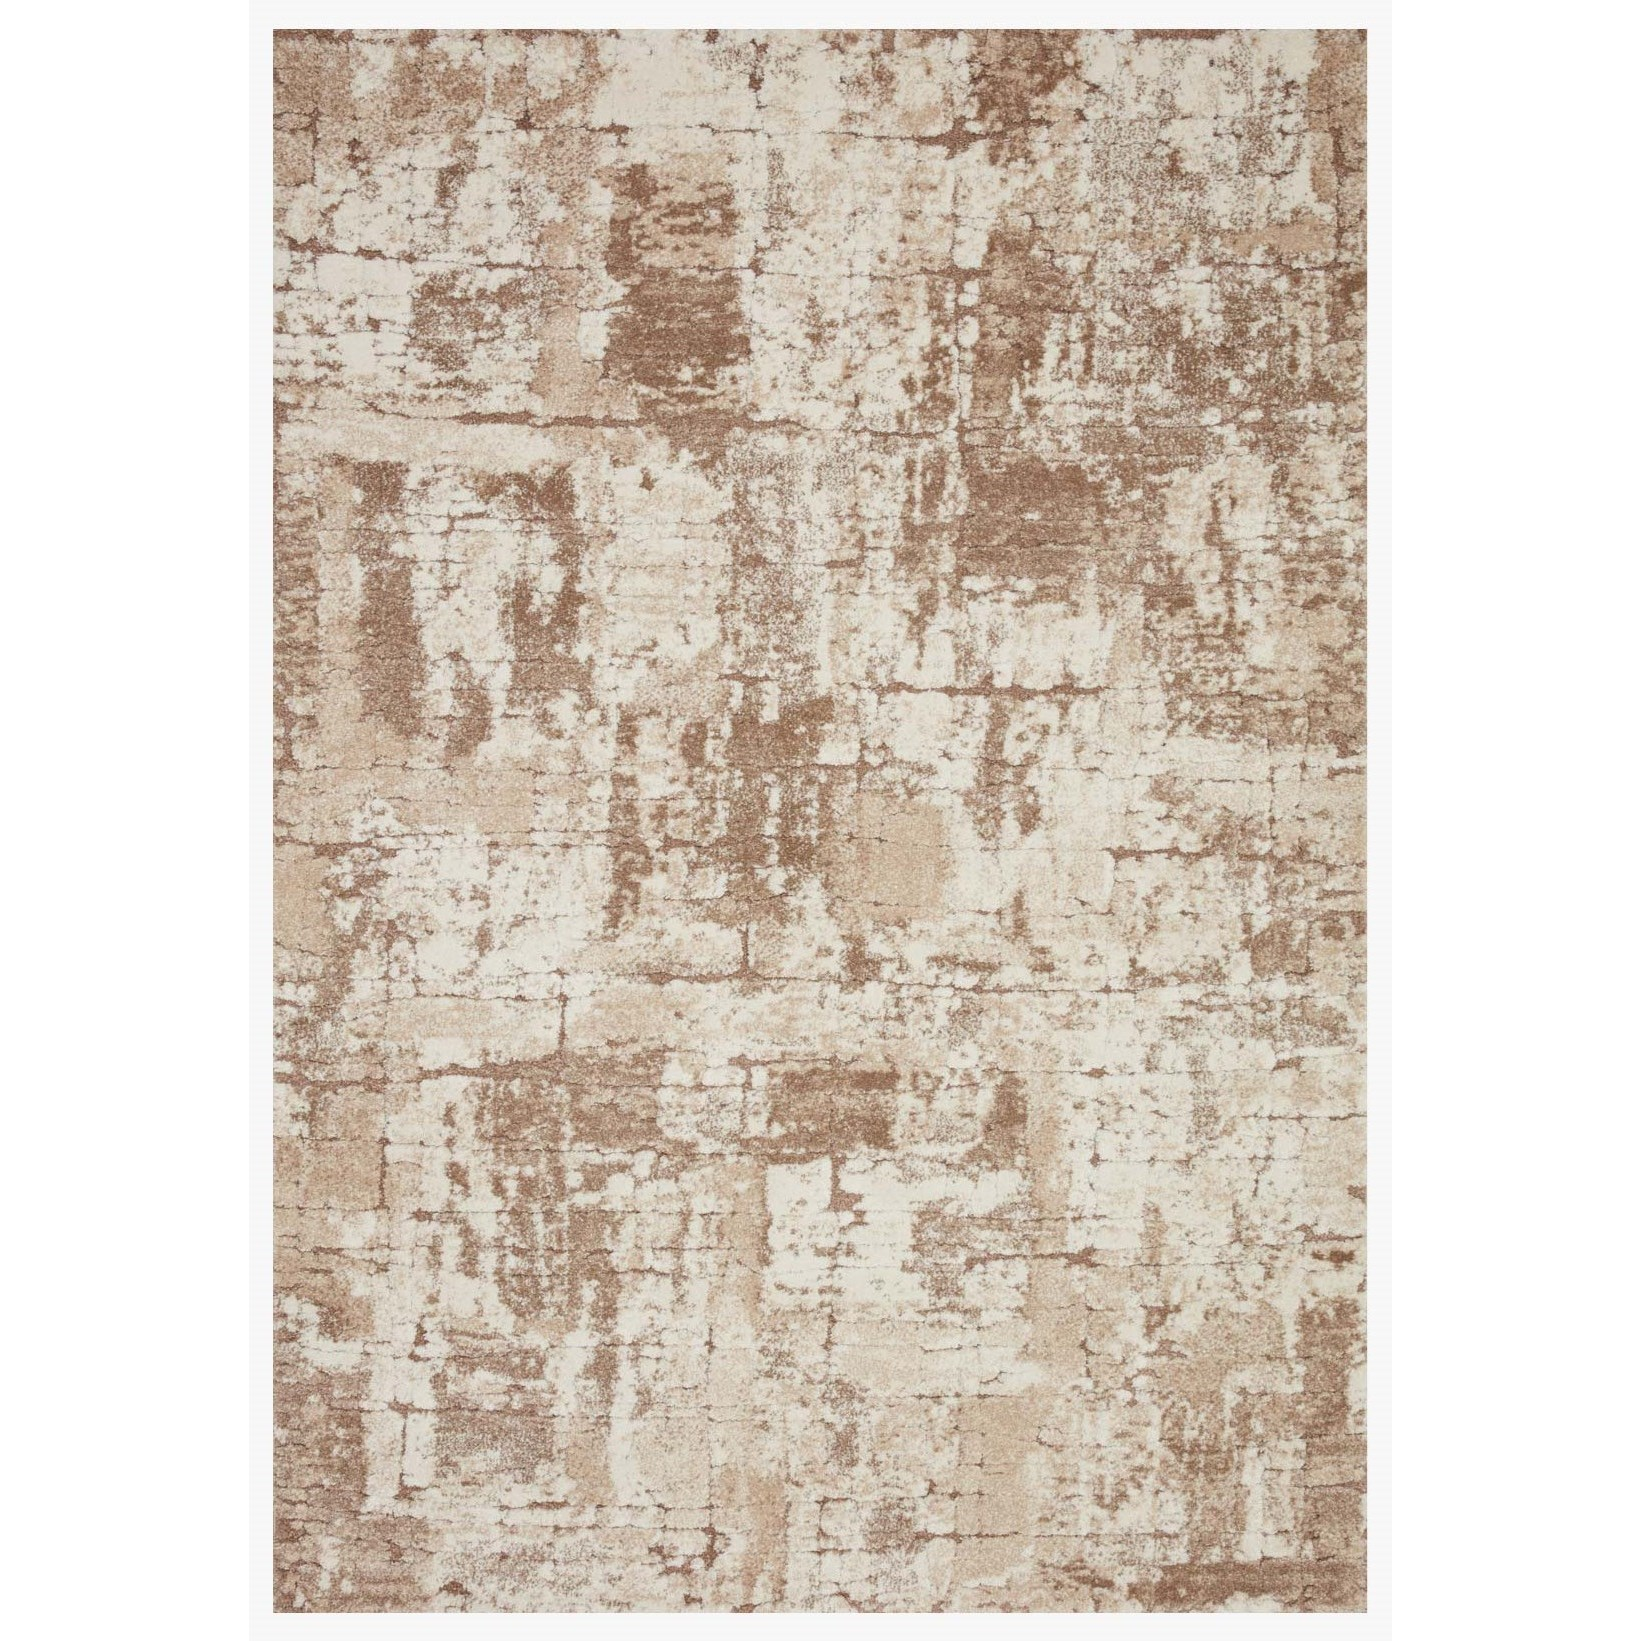 """Theory 7'10"""" x 10'10"""" Beige / Taupe Rug by Loloi Rugs at Virginia Furniture Market"""